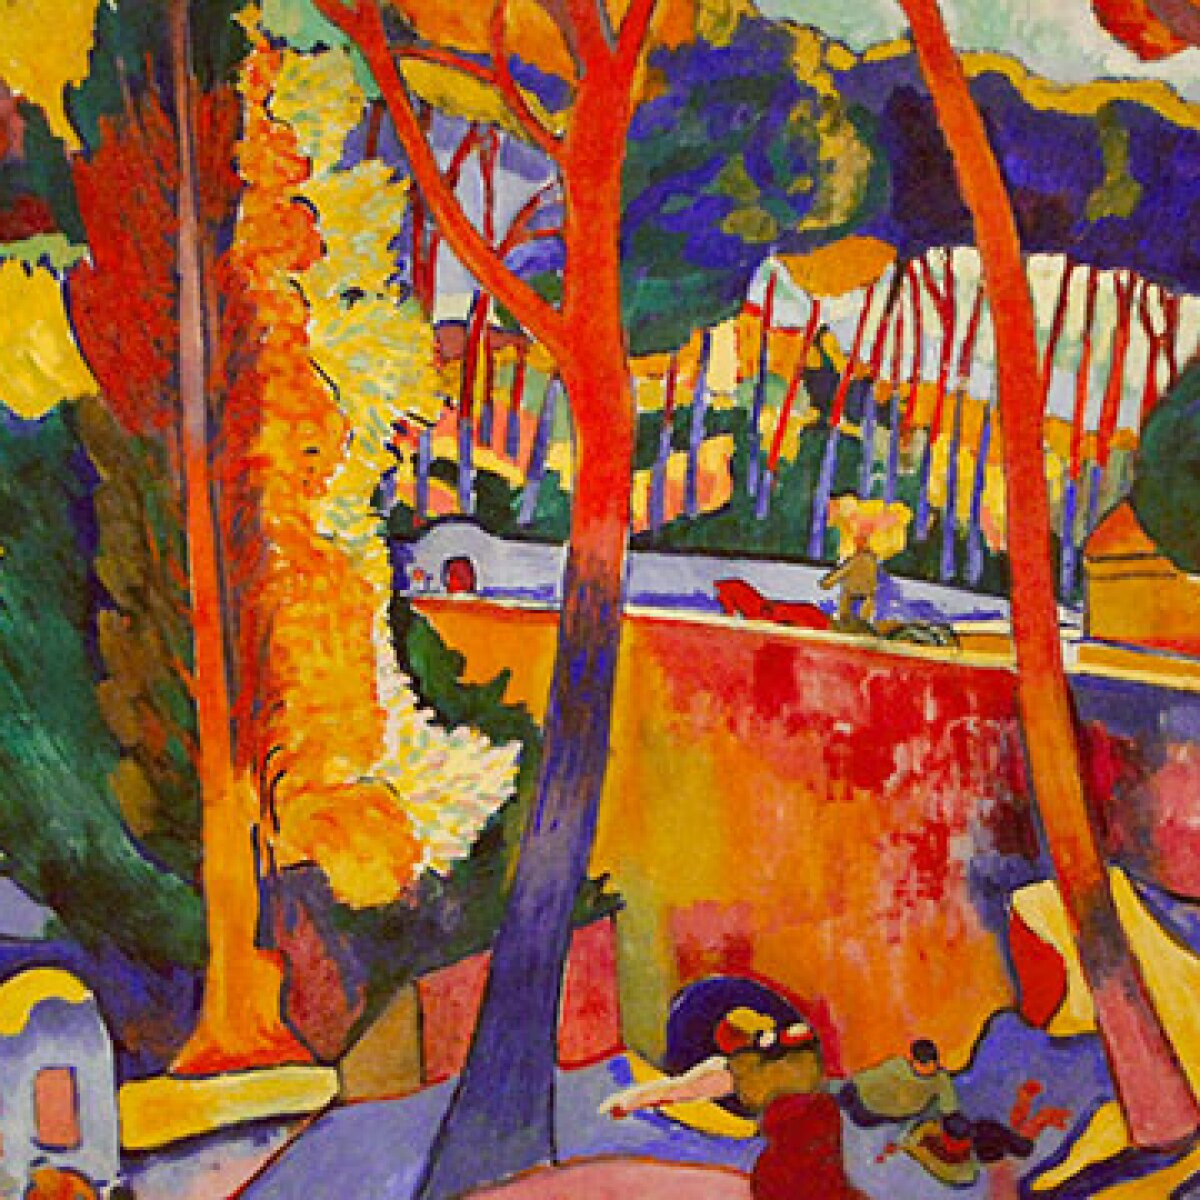 fauvist_Fauvism: 7 Things You Need to Know | Impressionist Modern Art | Sothebys